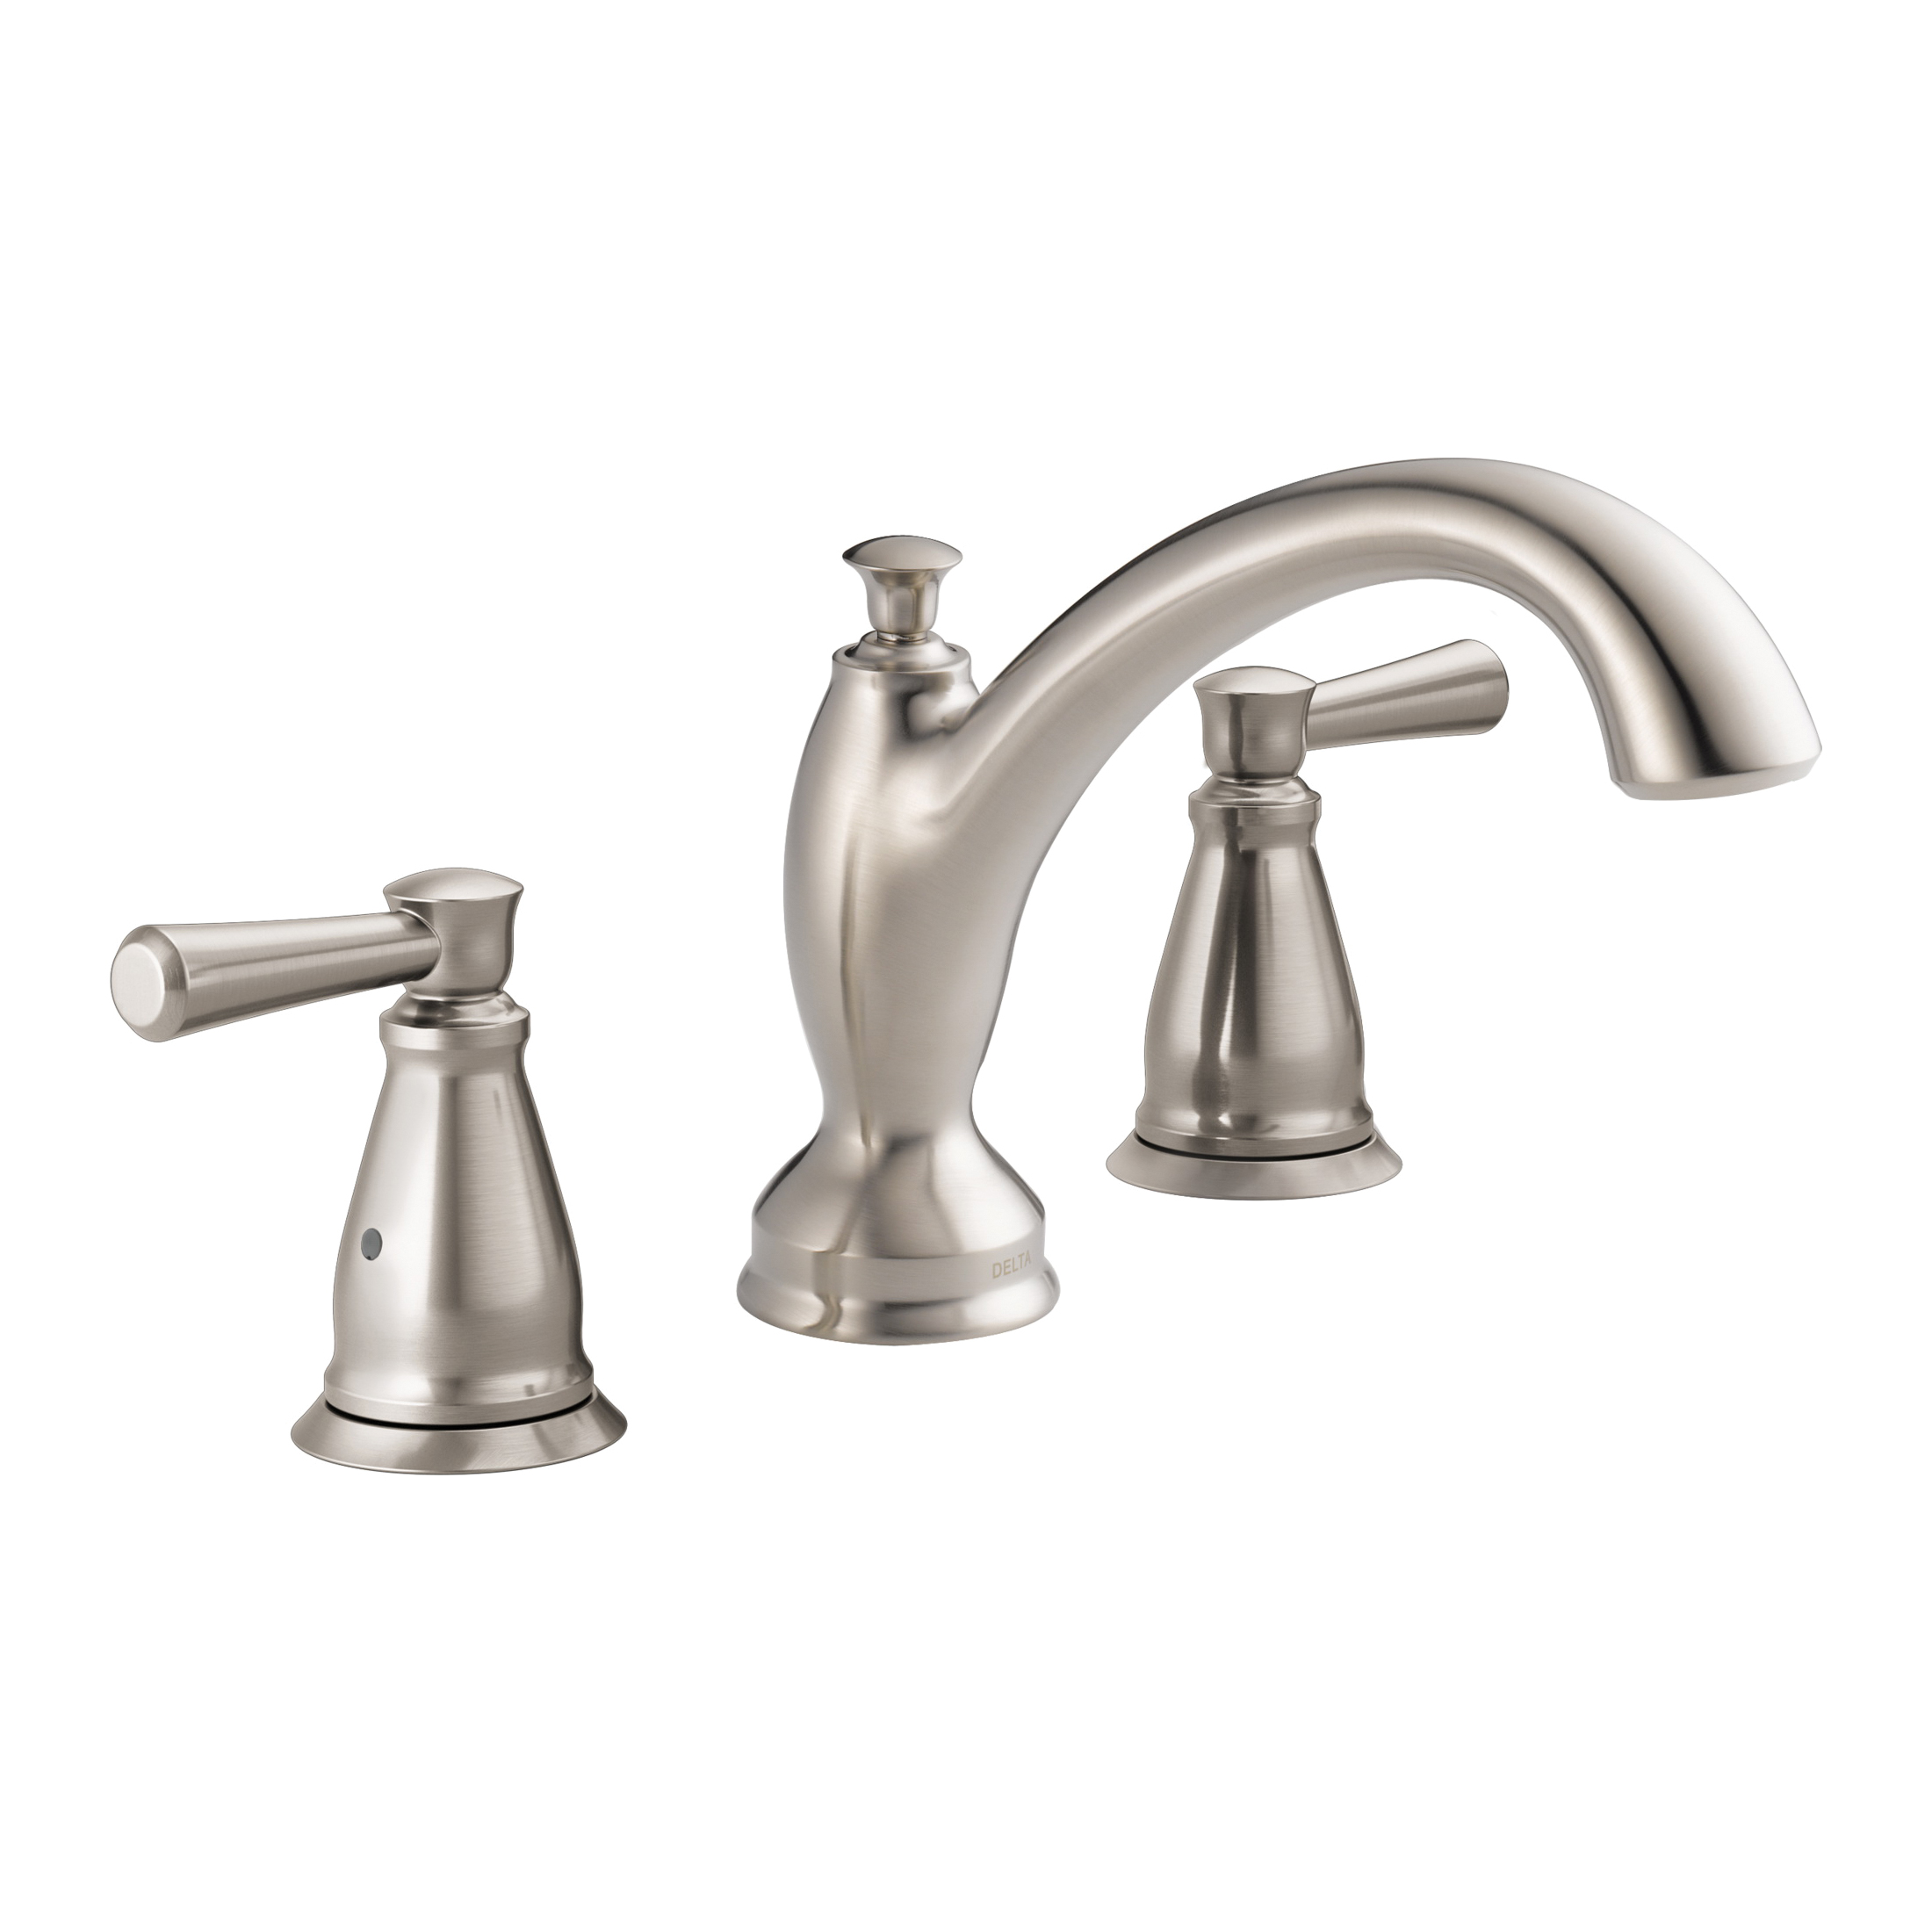 DELTA® T2793-SS Linden™ Roman Tub Trim, 2 gpm, 8 to 16 in Center, Stainless Steel, 2 Handles, Hand Shower Yes/No: No, Import